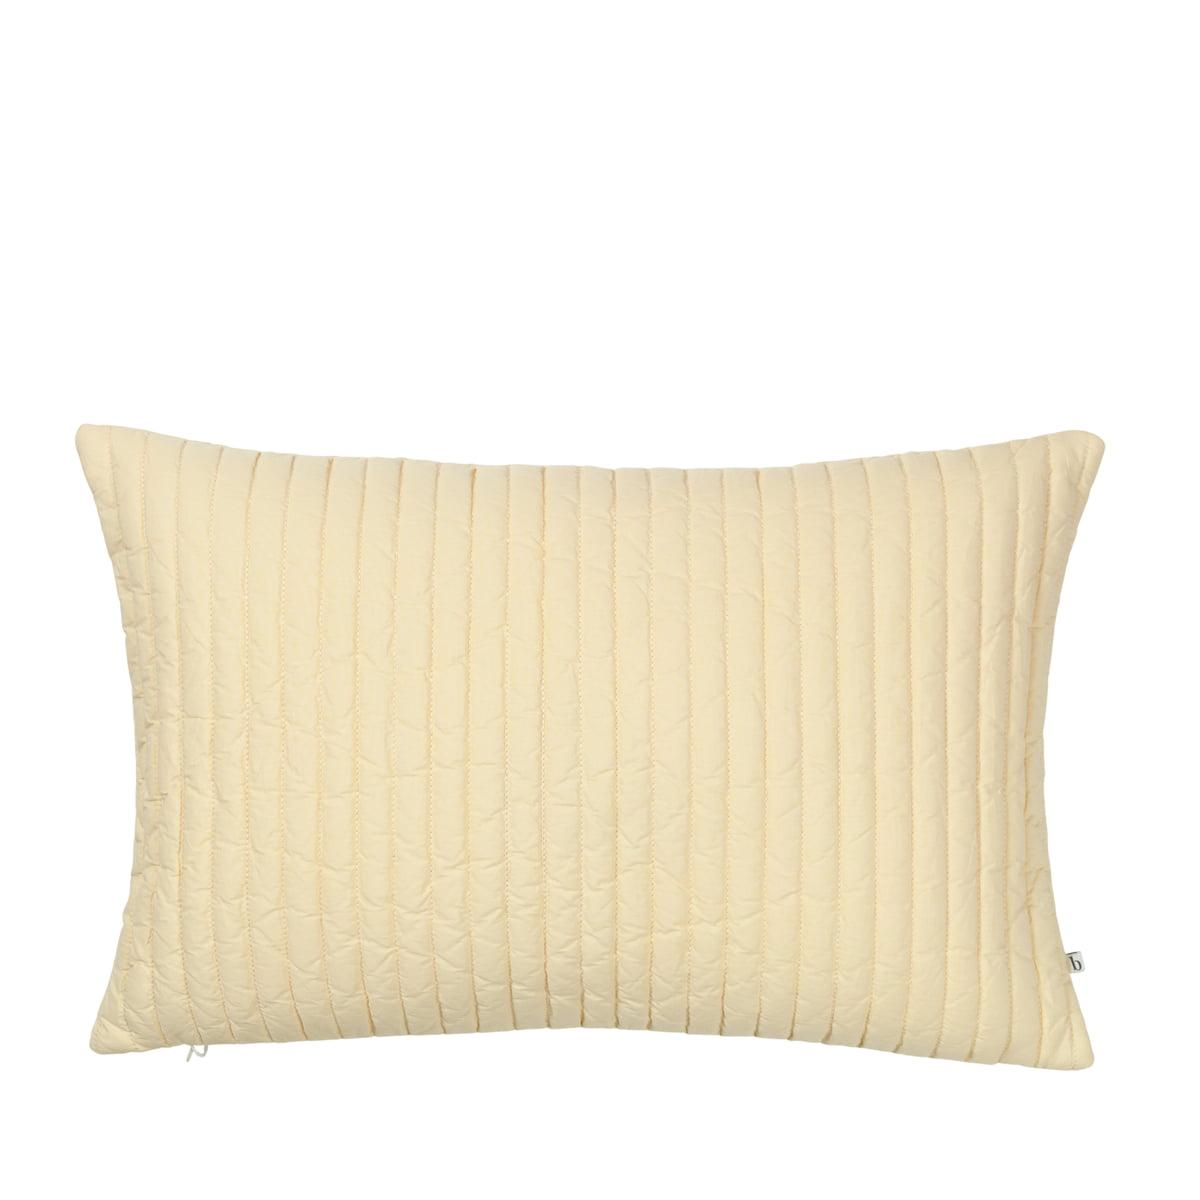 Broste Copenhagen - Sena Kissenbezug, 40 x 60 cm, golden fleece